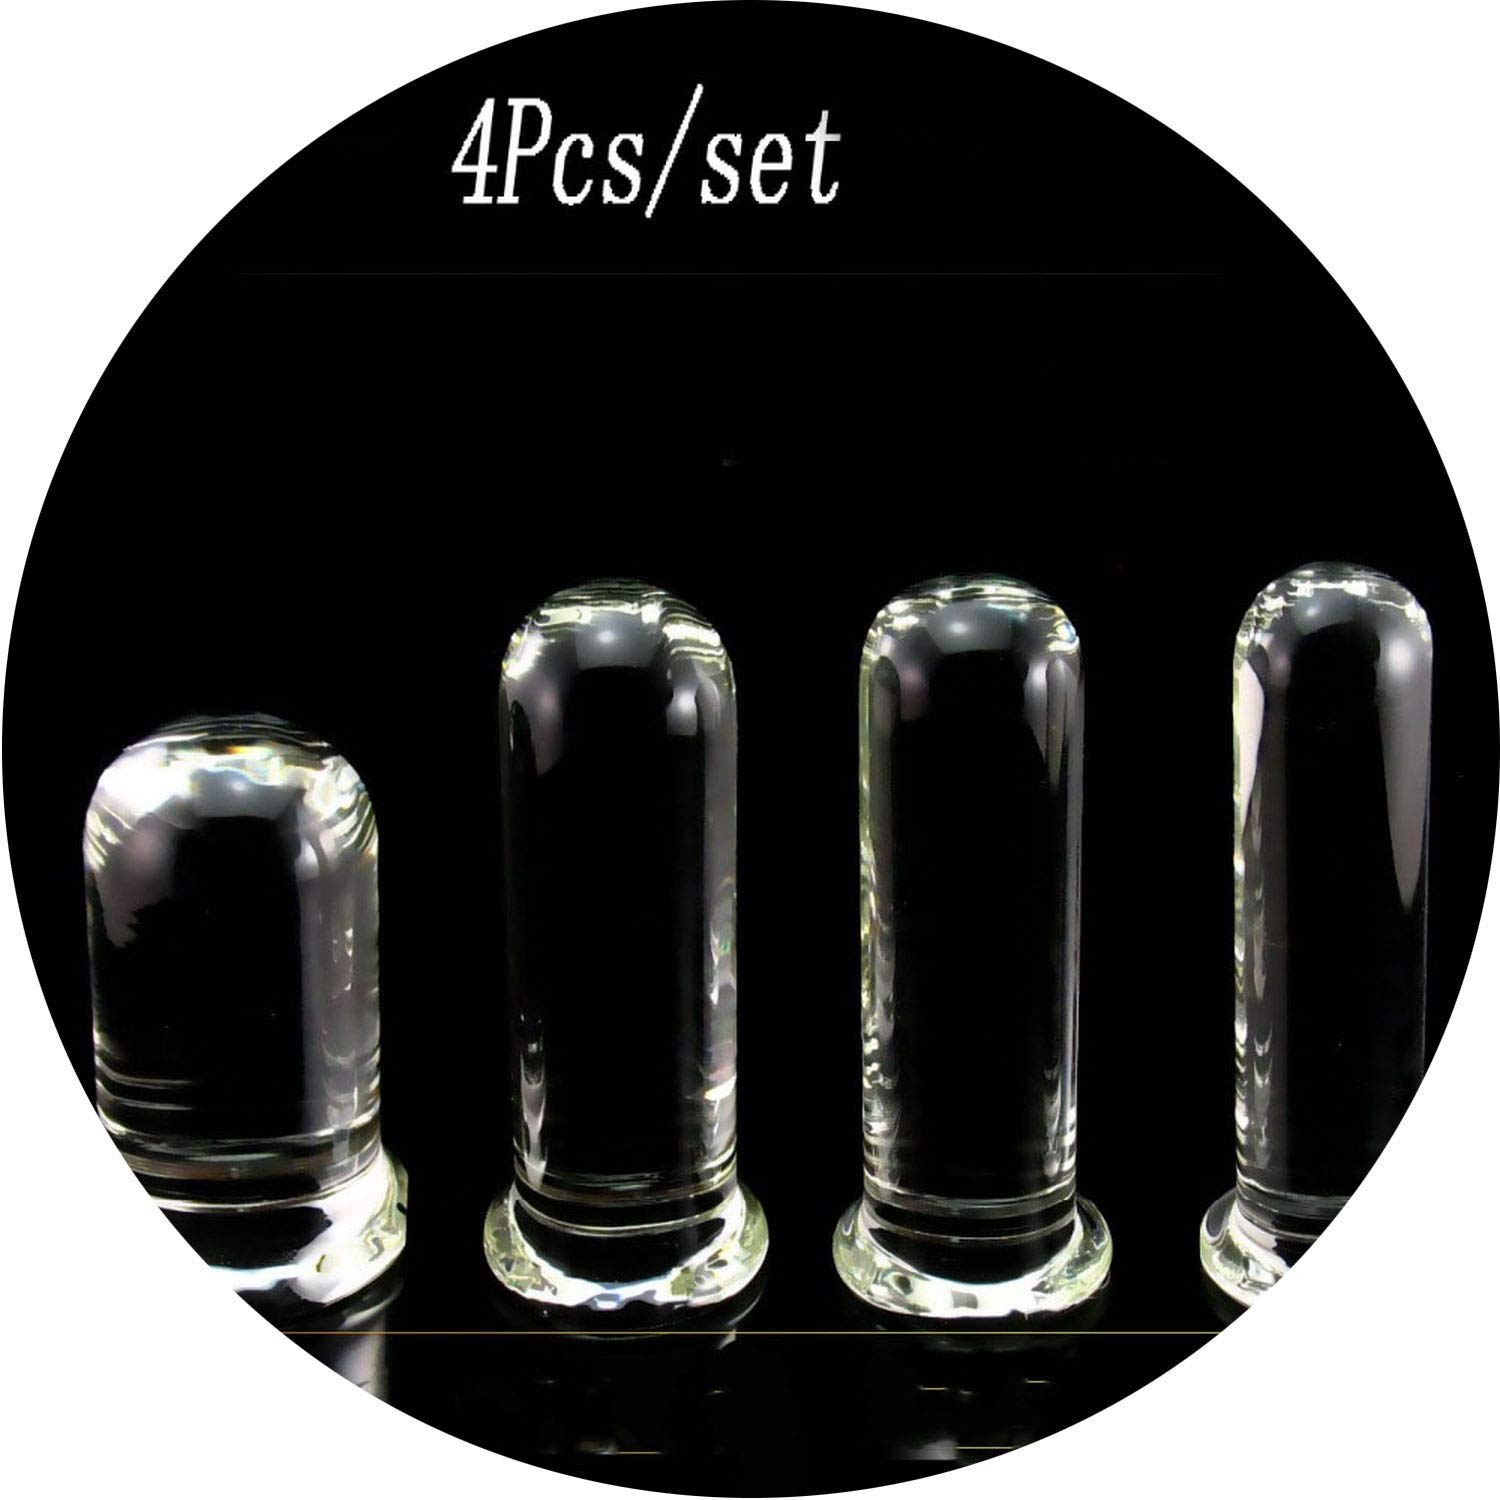 USEXMTY S-Tshirt 4 pcs/Set Promotion Clear Glass Huge Big Blockage Blockage Adult Toys for Woman Blockage Stimulator Blockage Excitement